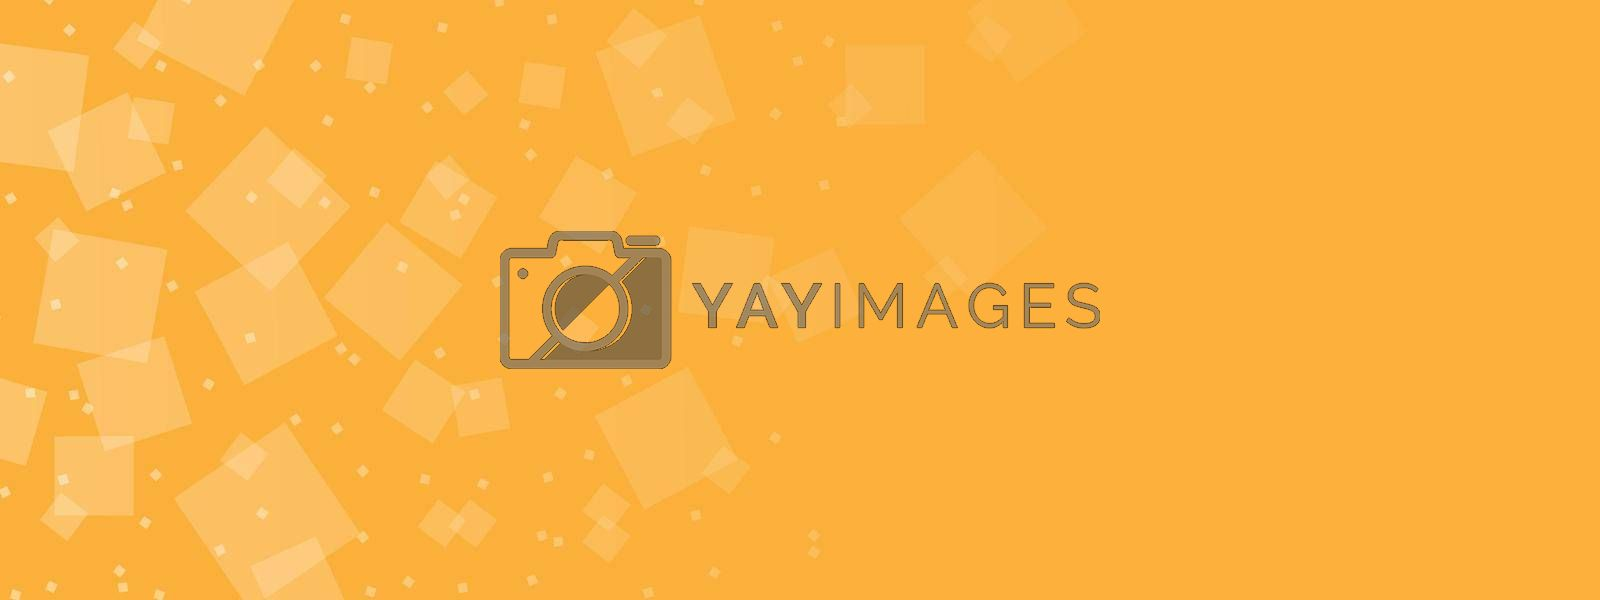 Royalty free image of Abstract background in orange tones for banners, posters, postcards and creative design for texture, textiles, packaging and simple backgrounds by Grommik